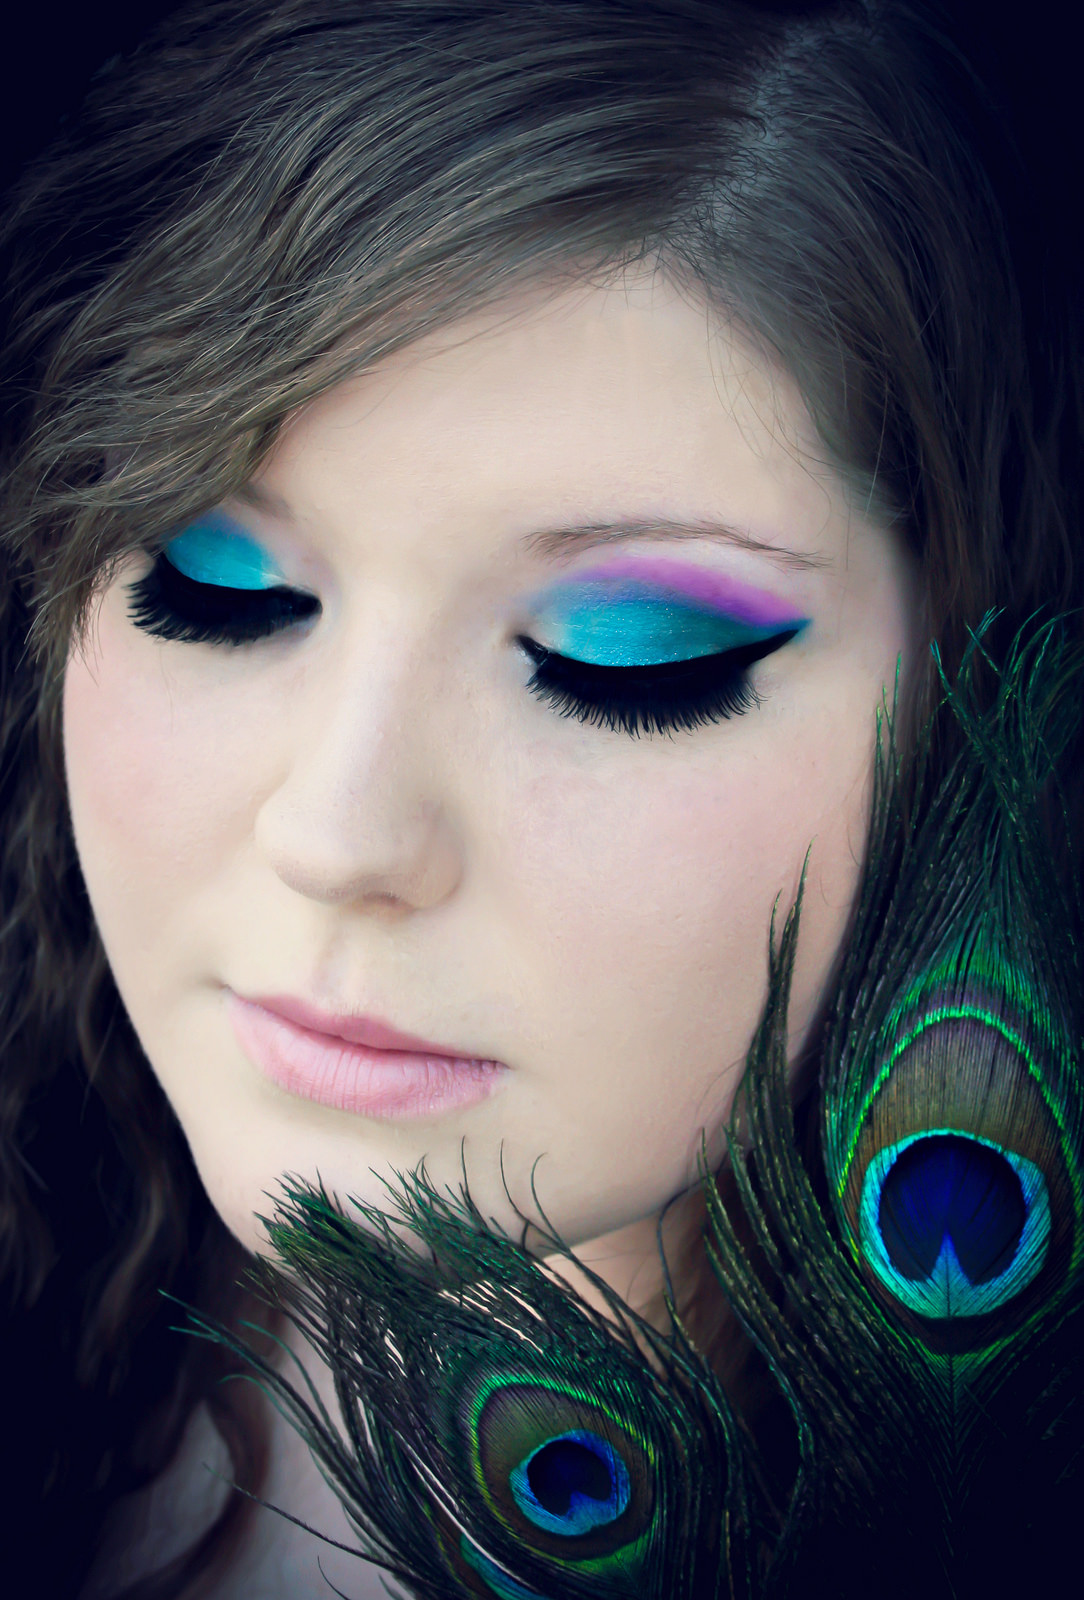 Video Makeup Tutorials: 19+ Peacock Makeup Designs, Trends, Ideas